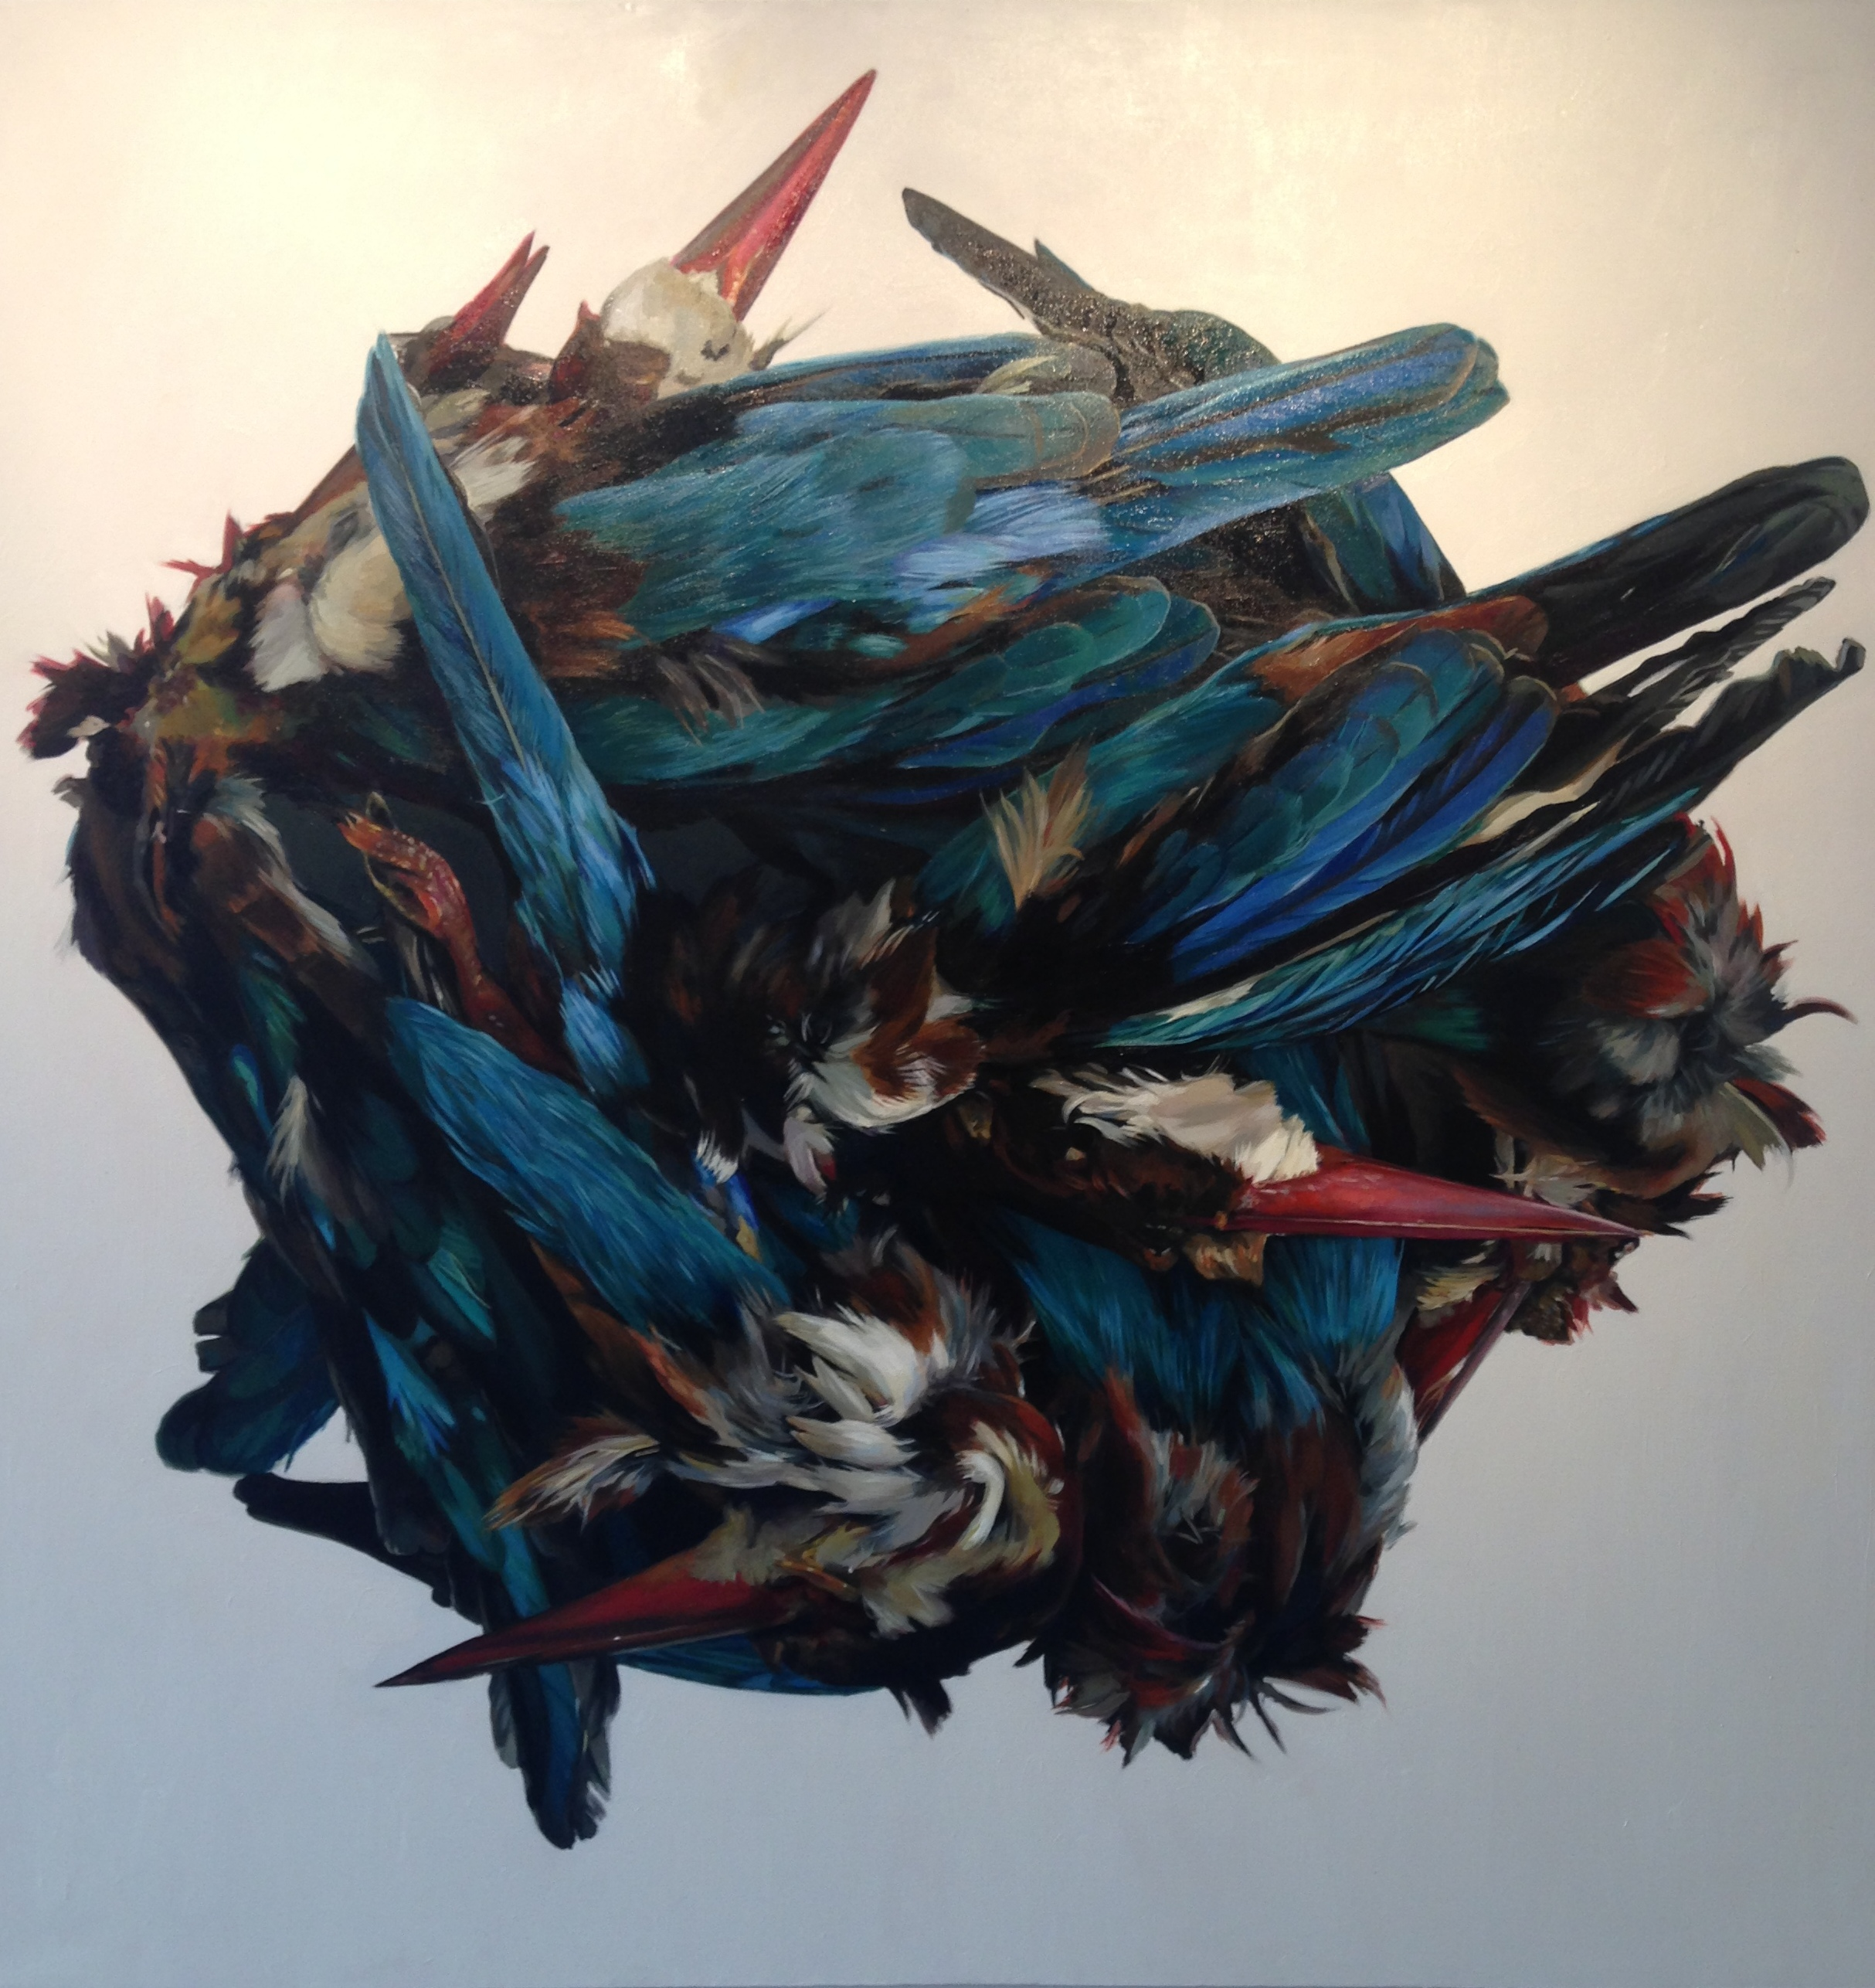 Augustina Droze's painting 'Kingfishers in Mound' is on view in Indigo Art through Aug. 8.